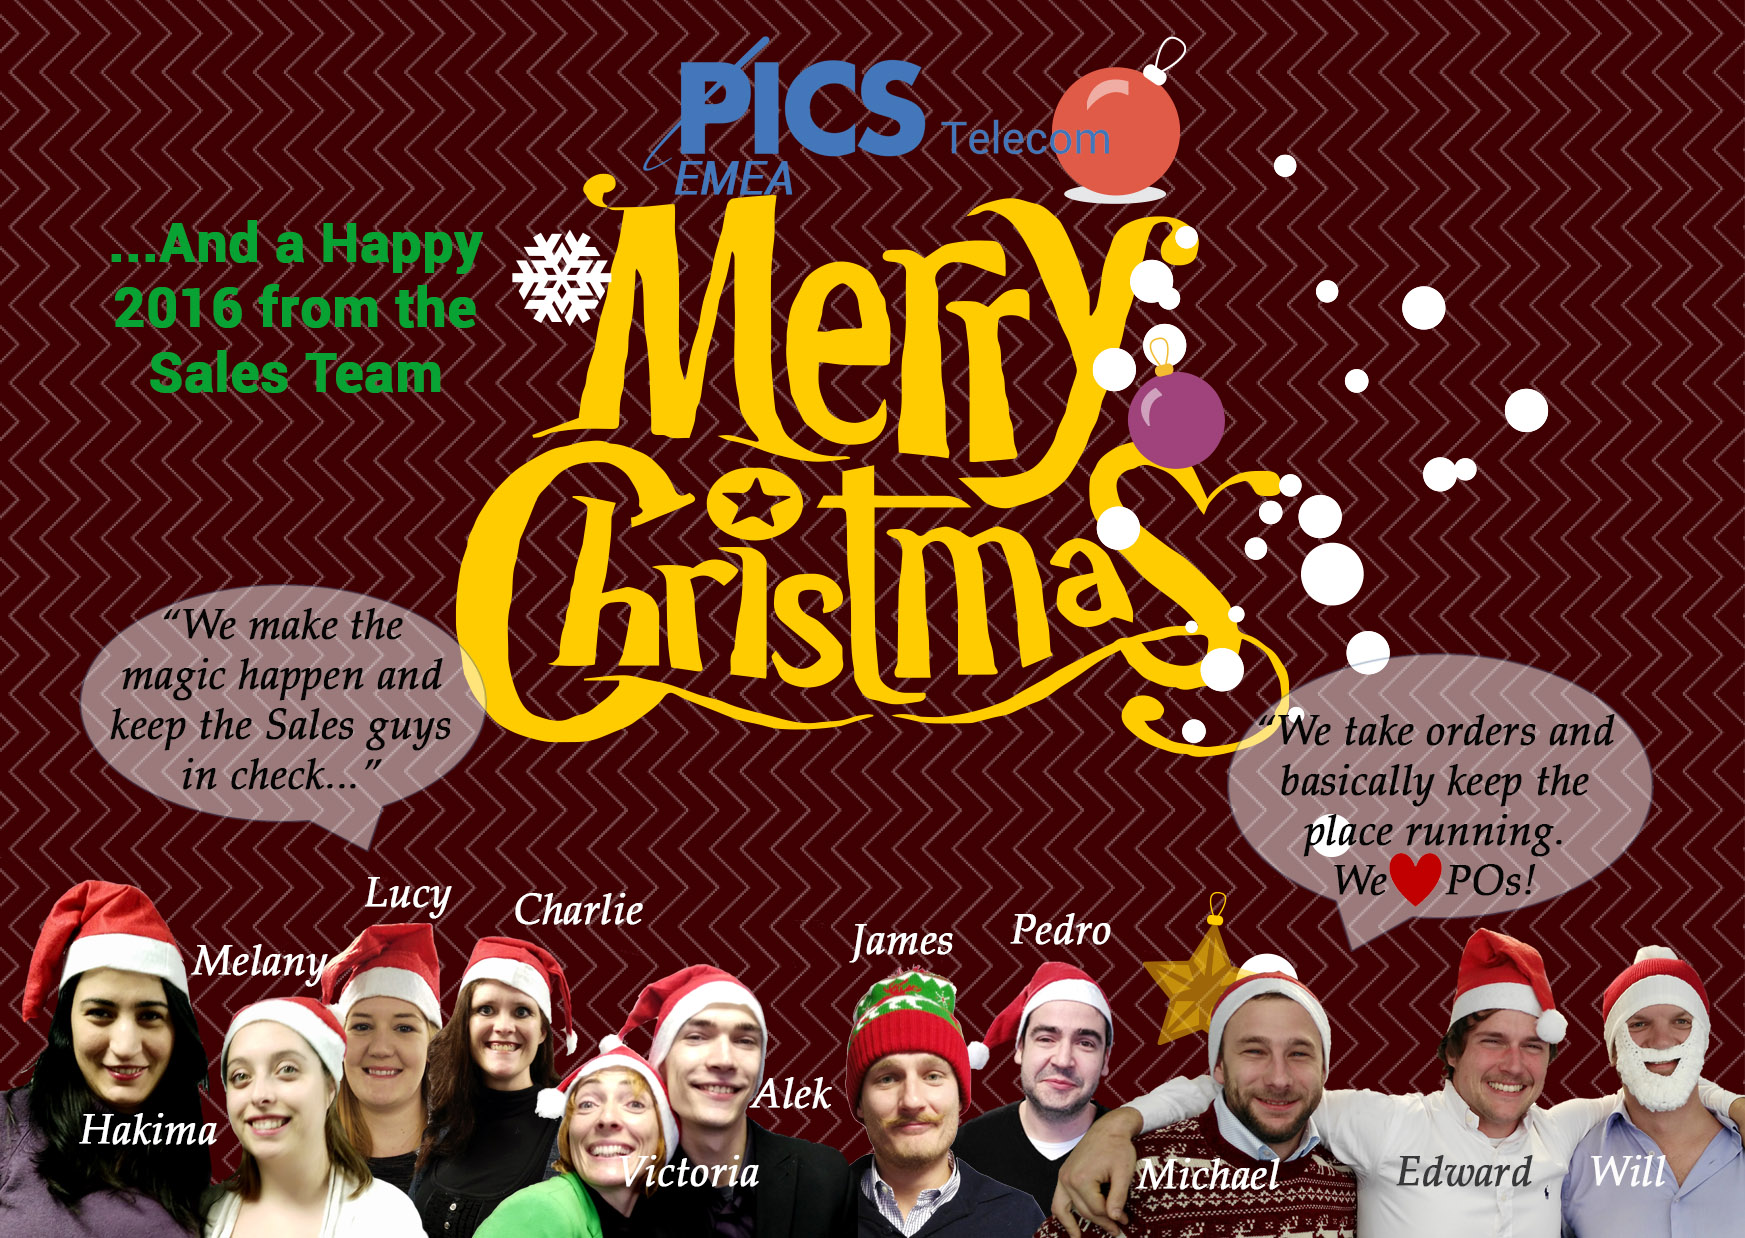 PICS Telecom UK Christmas Card Sales